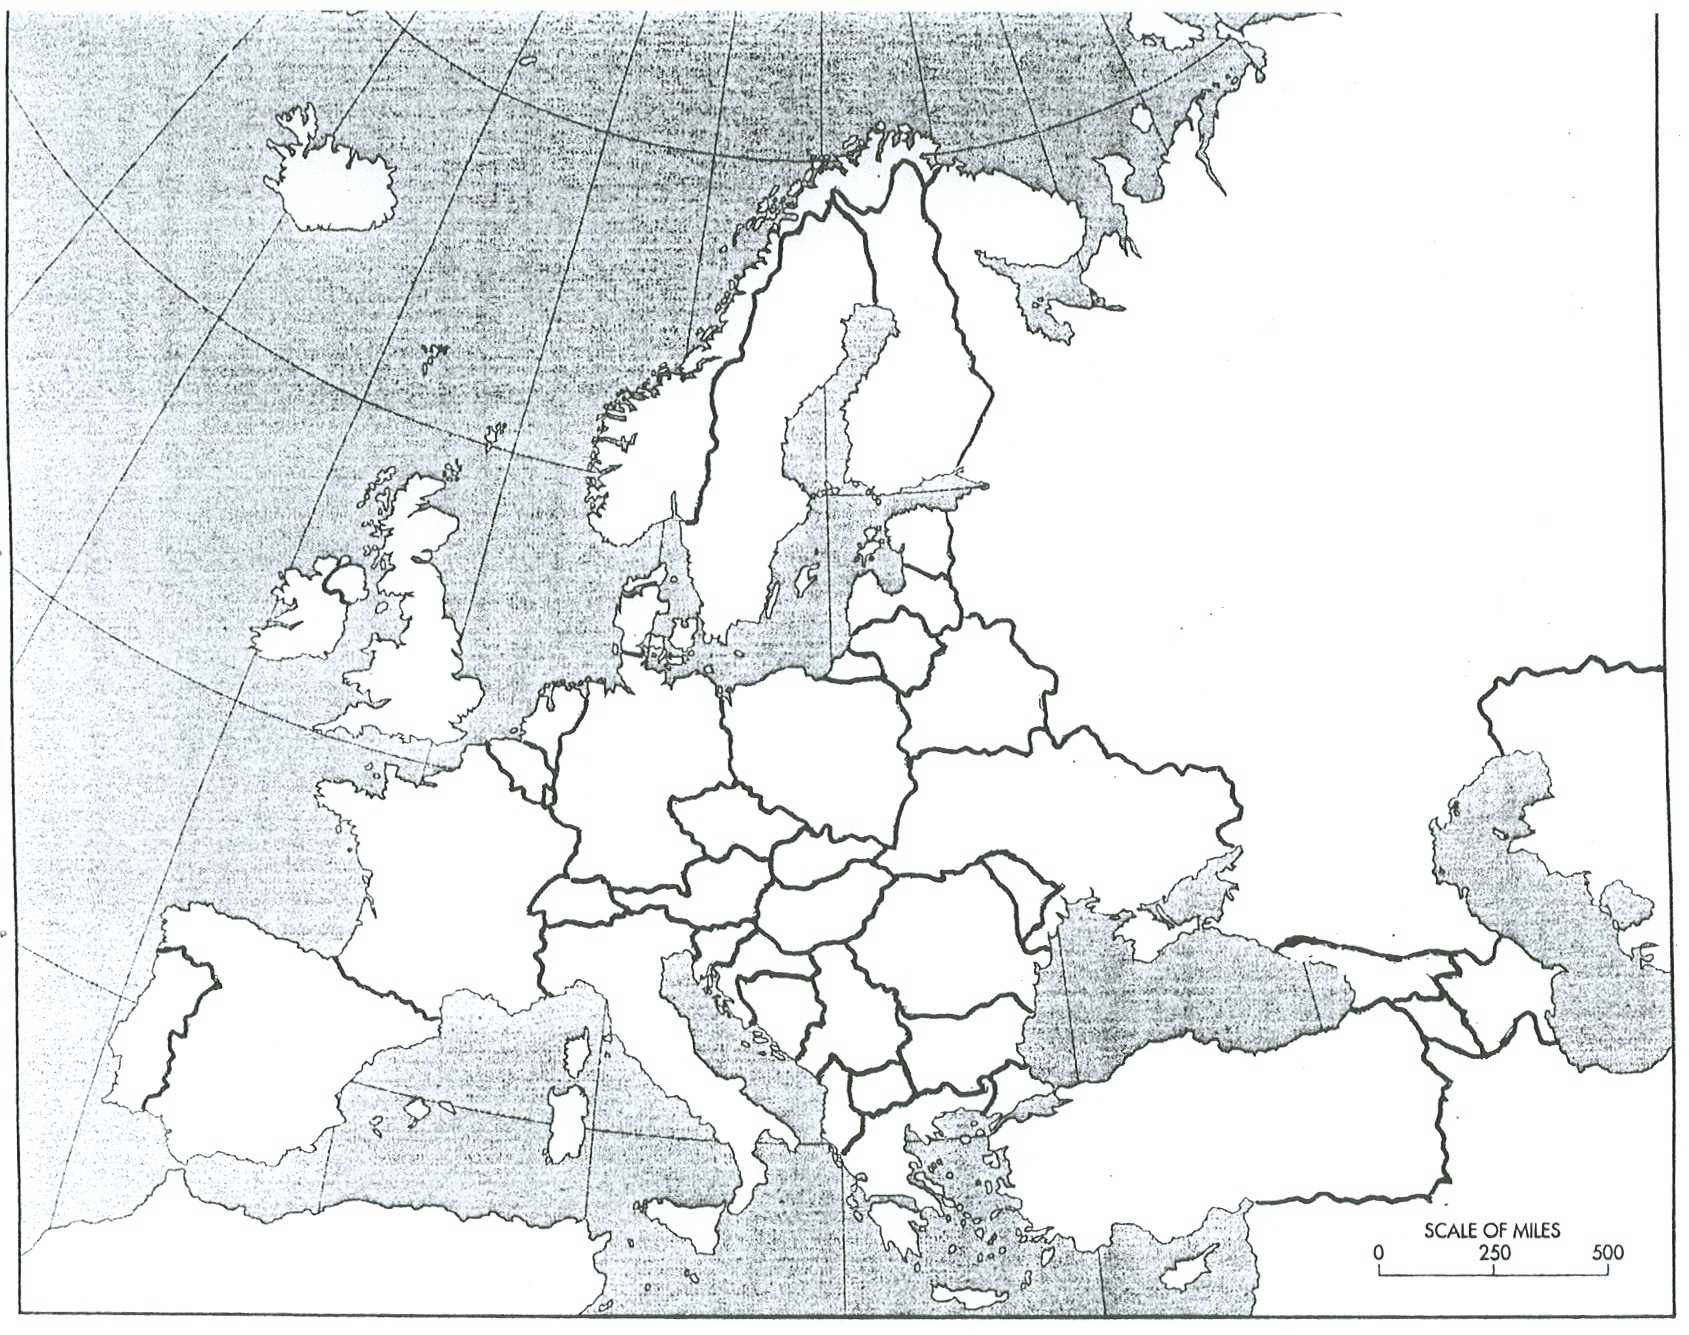 blank map of europe 1942 Map Of Europe 1914 Blank | Europe map, Map, 13 colonies map